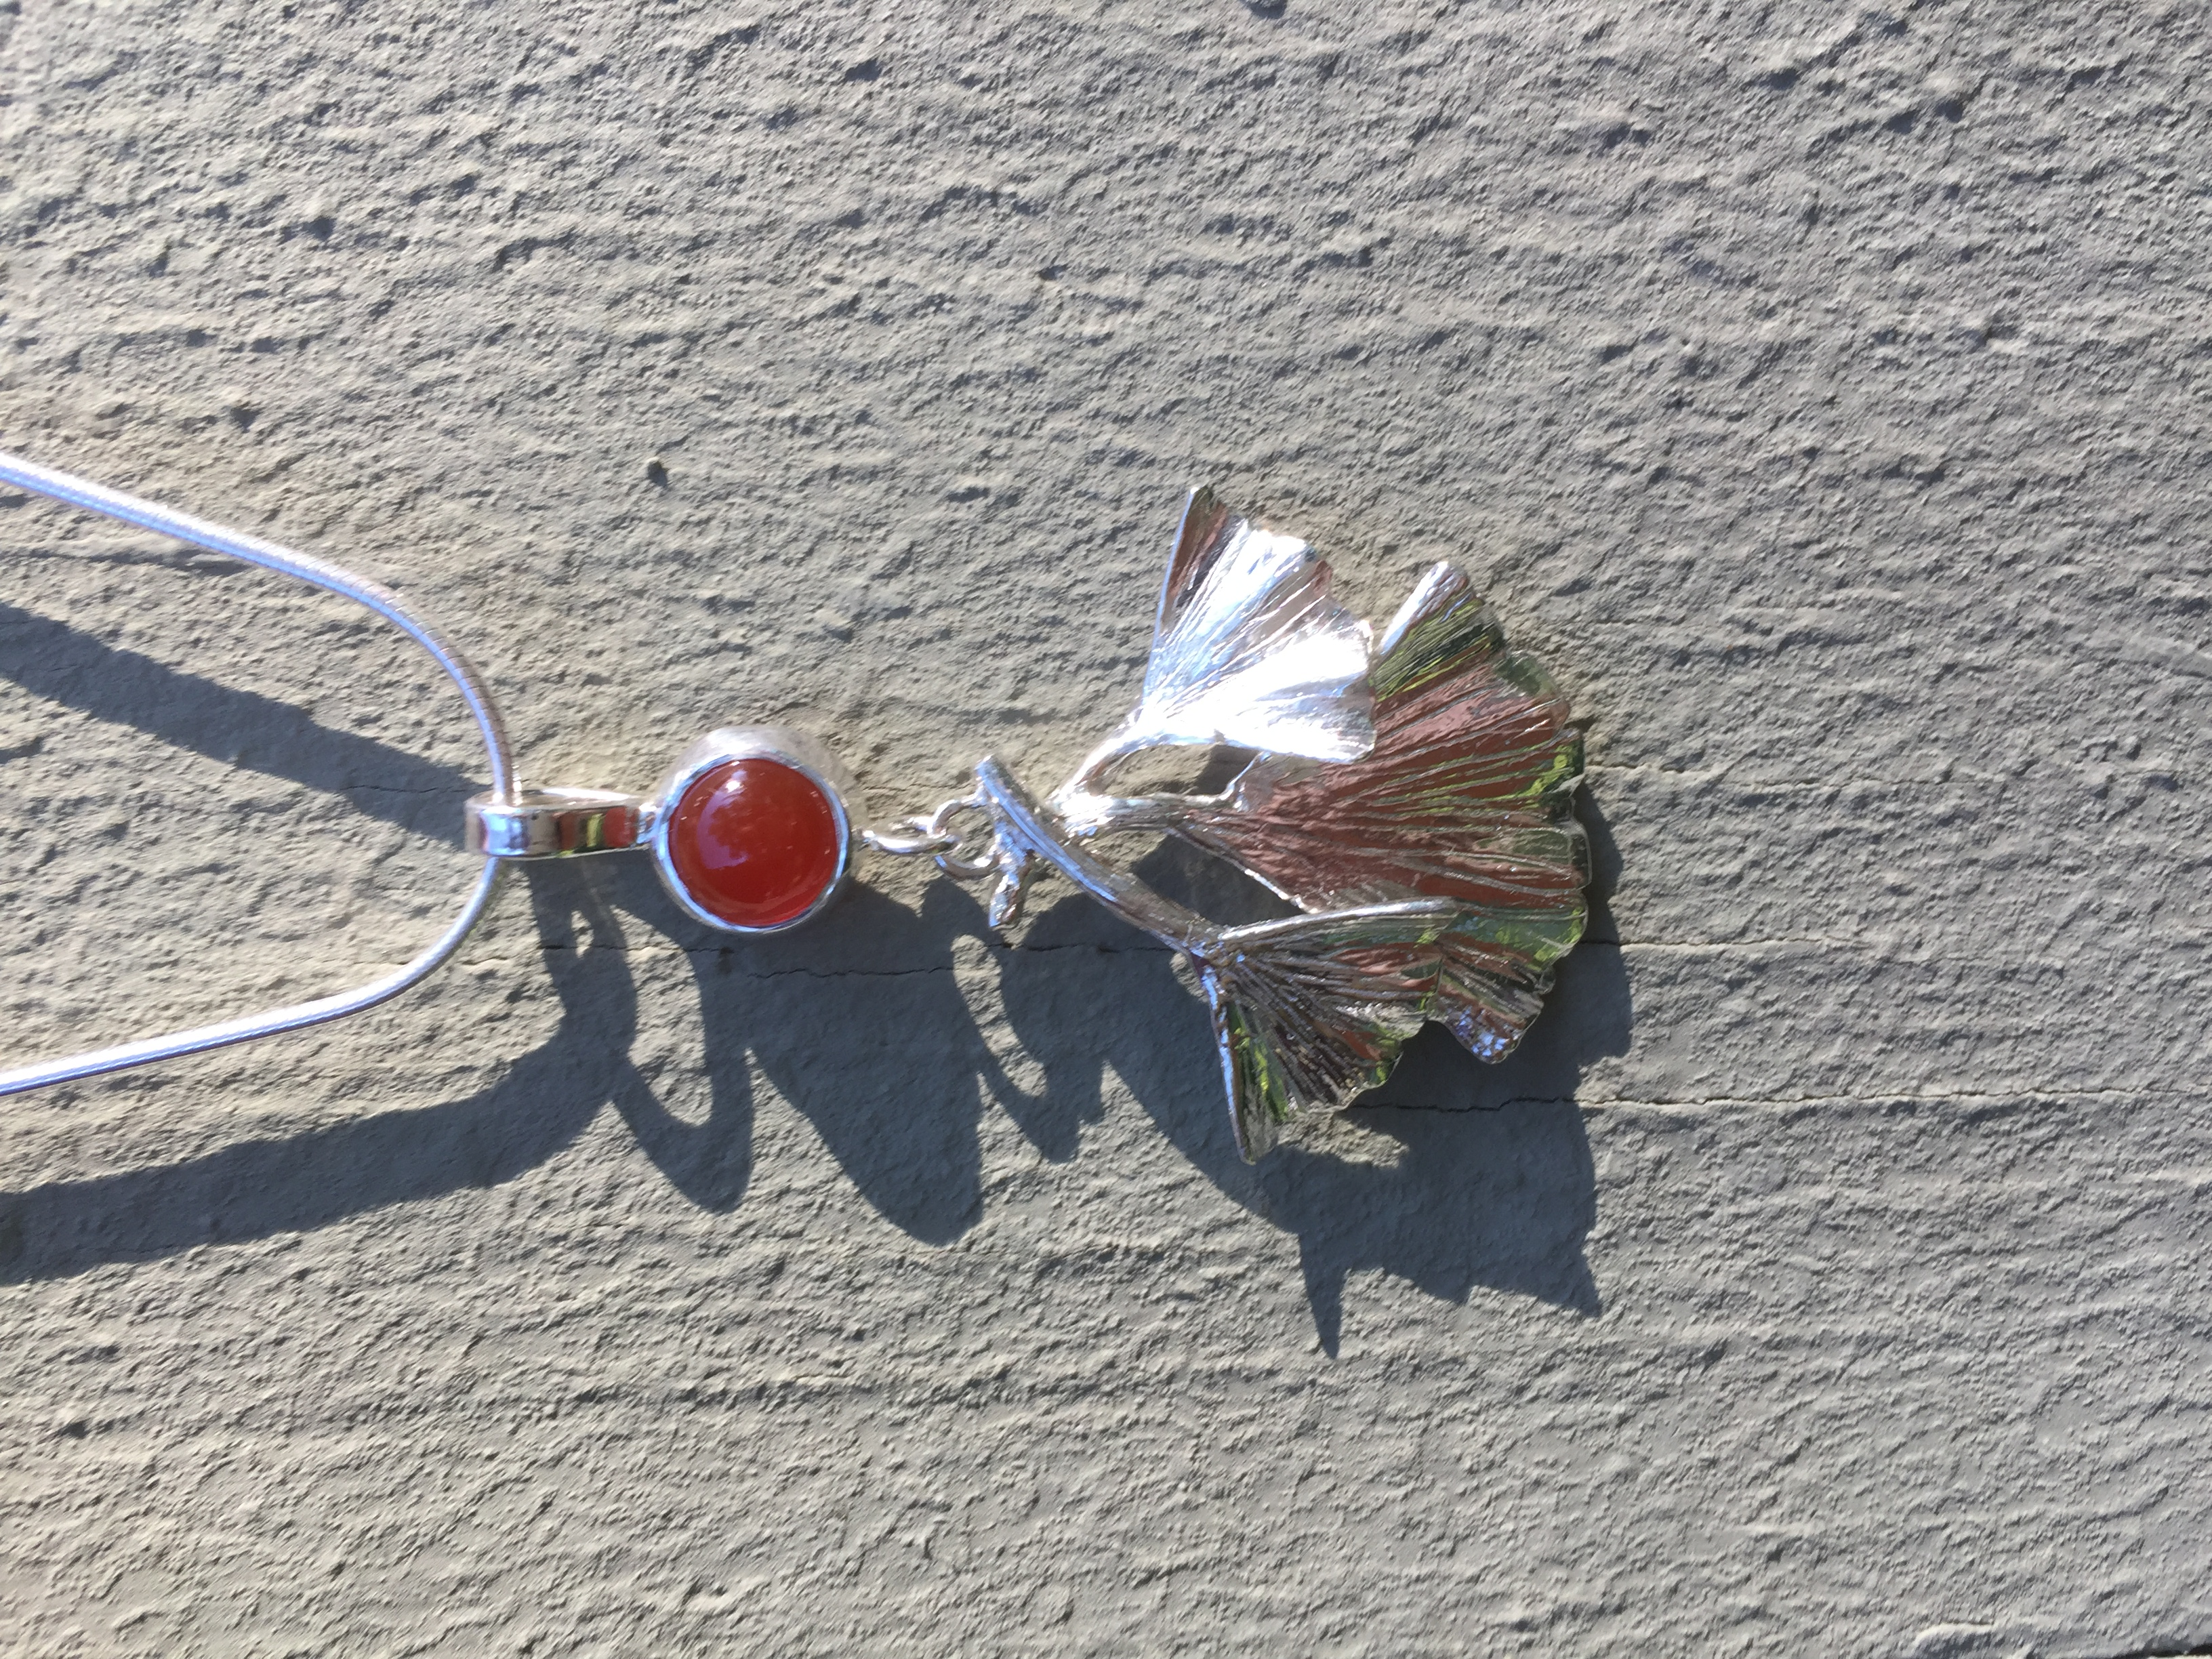 Red carnelian cabochon stone and silver gingko tree leaves necklace pendant